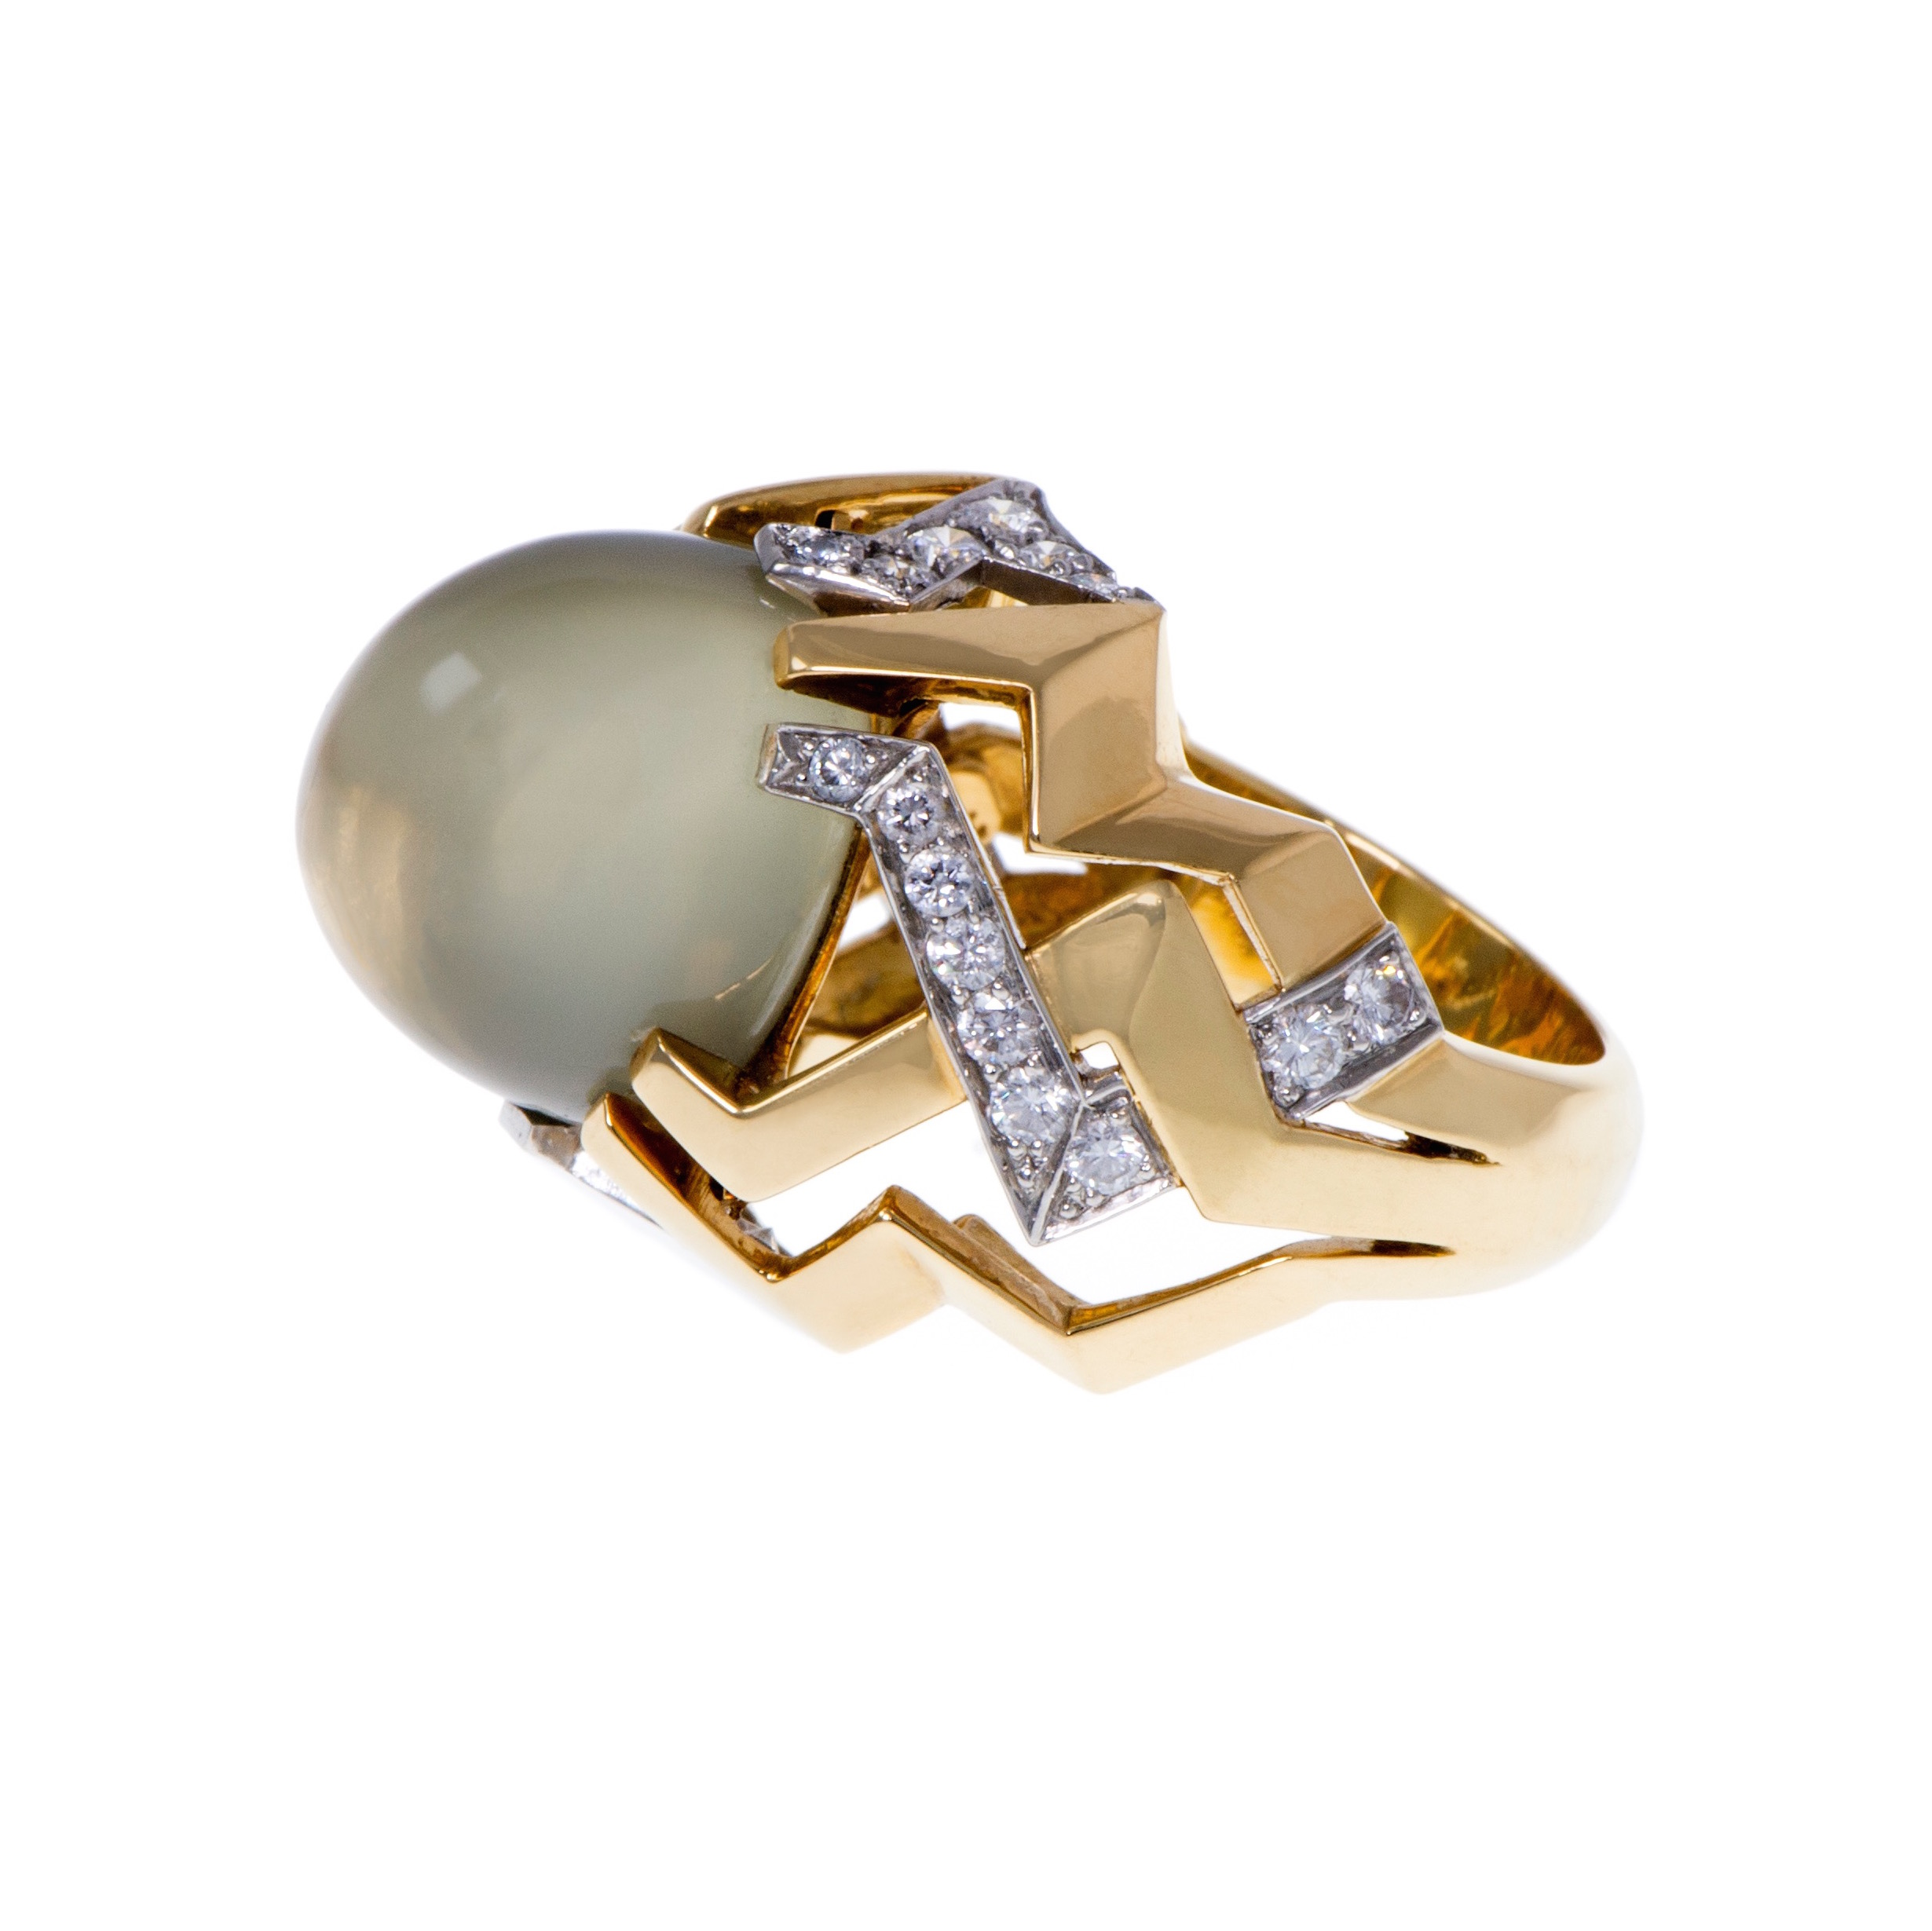 """A ring of cabochon moonstone, diamonds, 18k gold, and platinum, Paloma Picasso for Tiffany & Co., U.S.A., c. 1980s. Size 8 ¼"""""""